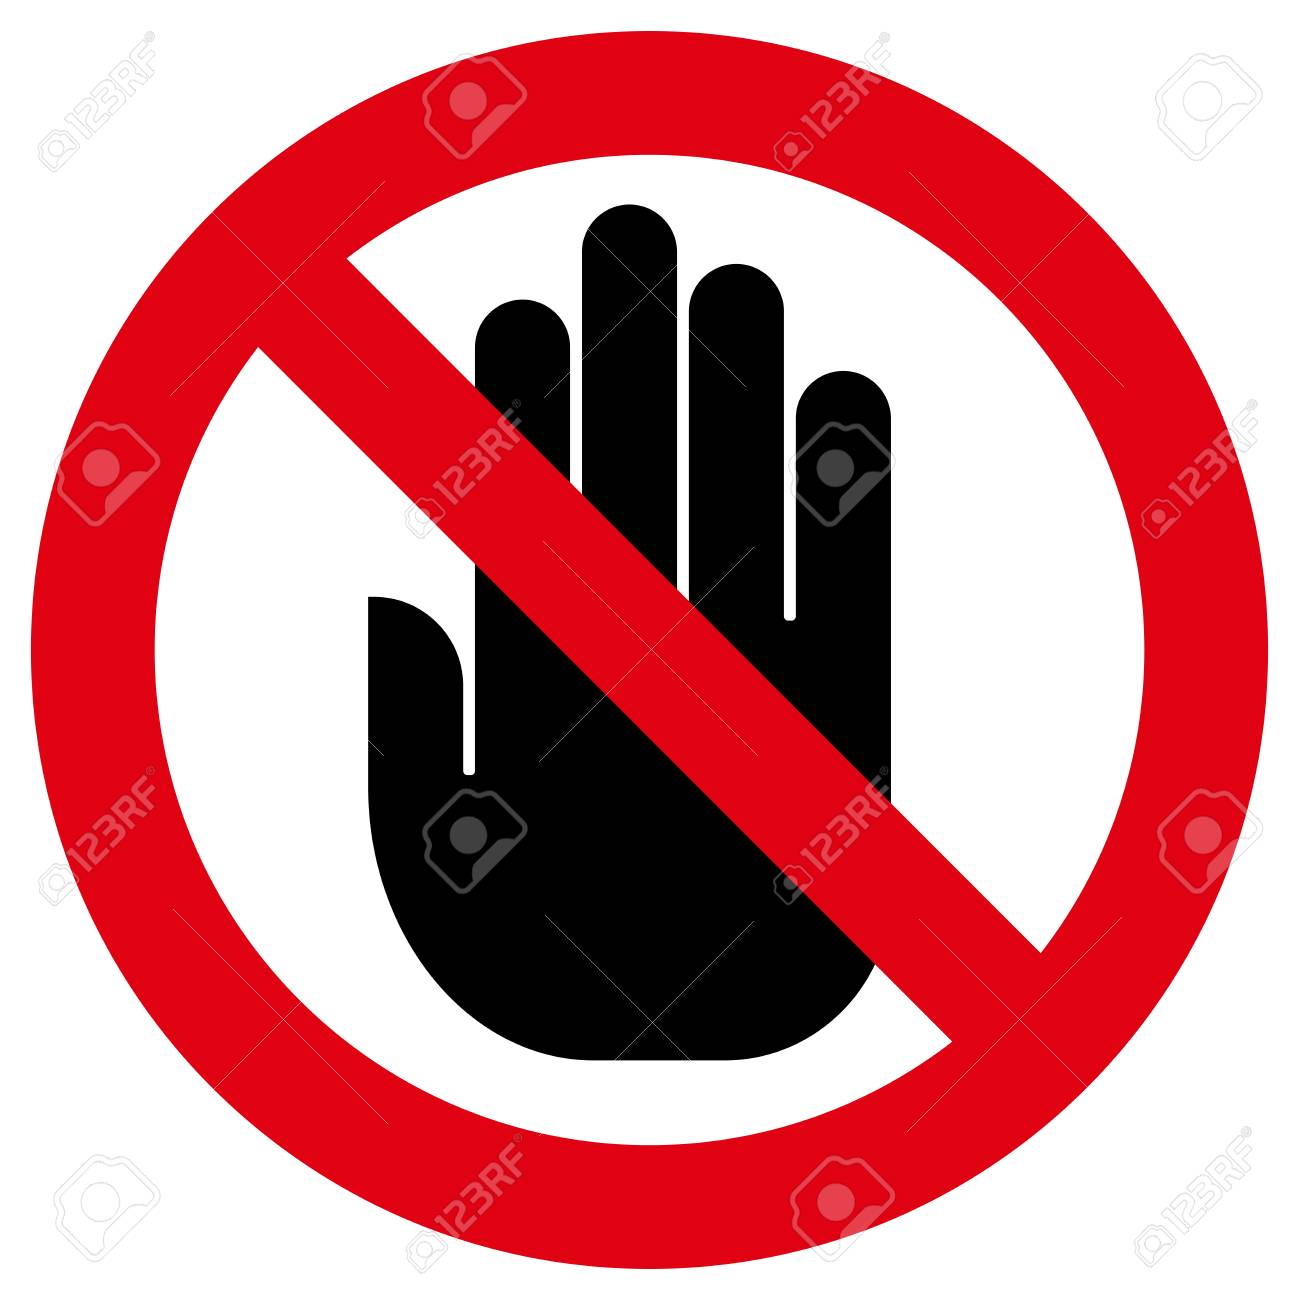 Prohibitory sign with hand inside - 92416654